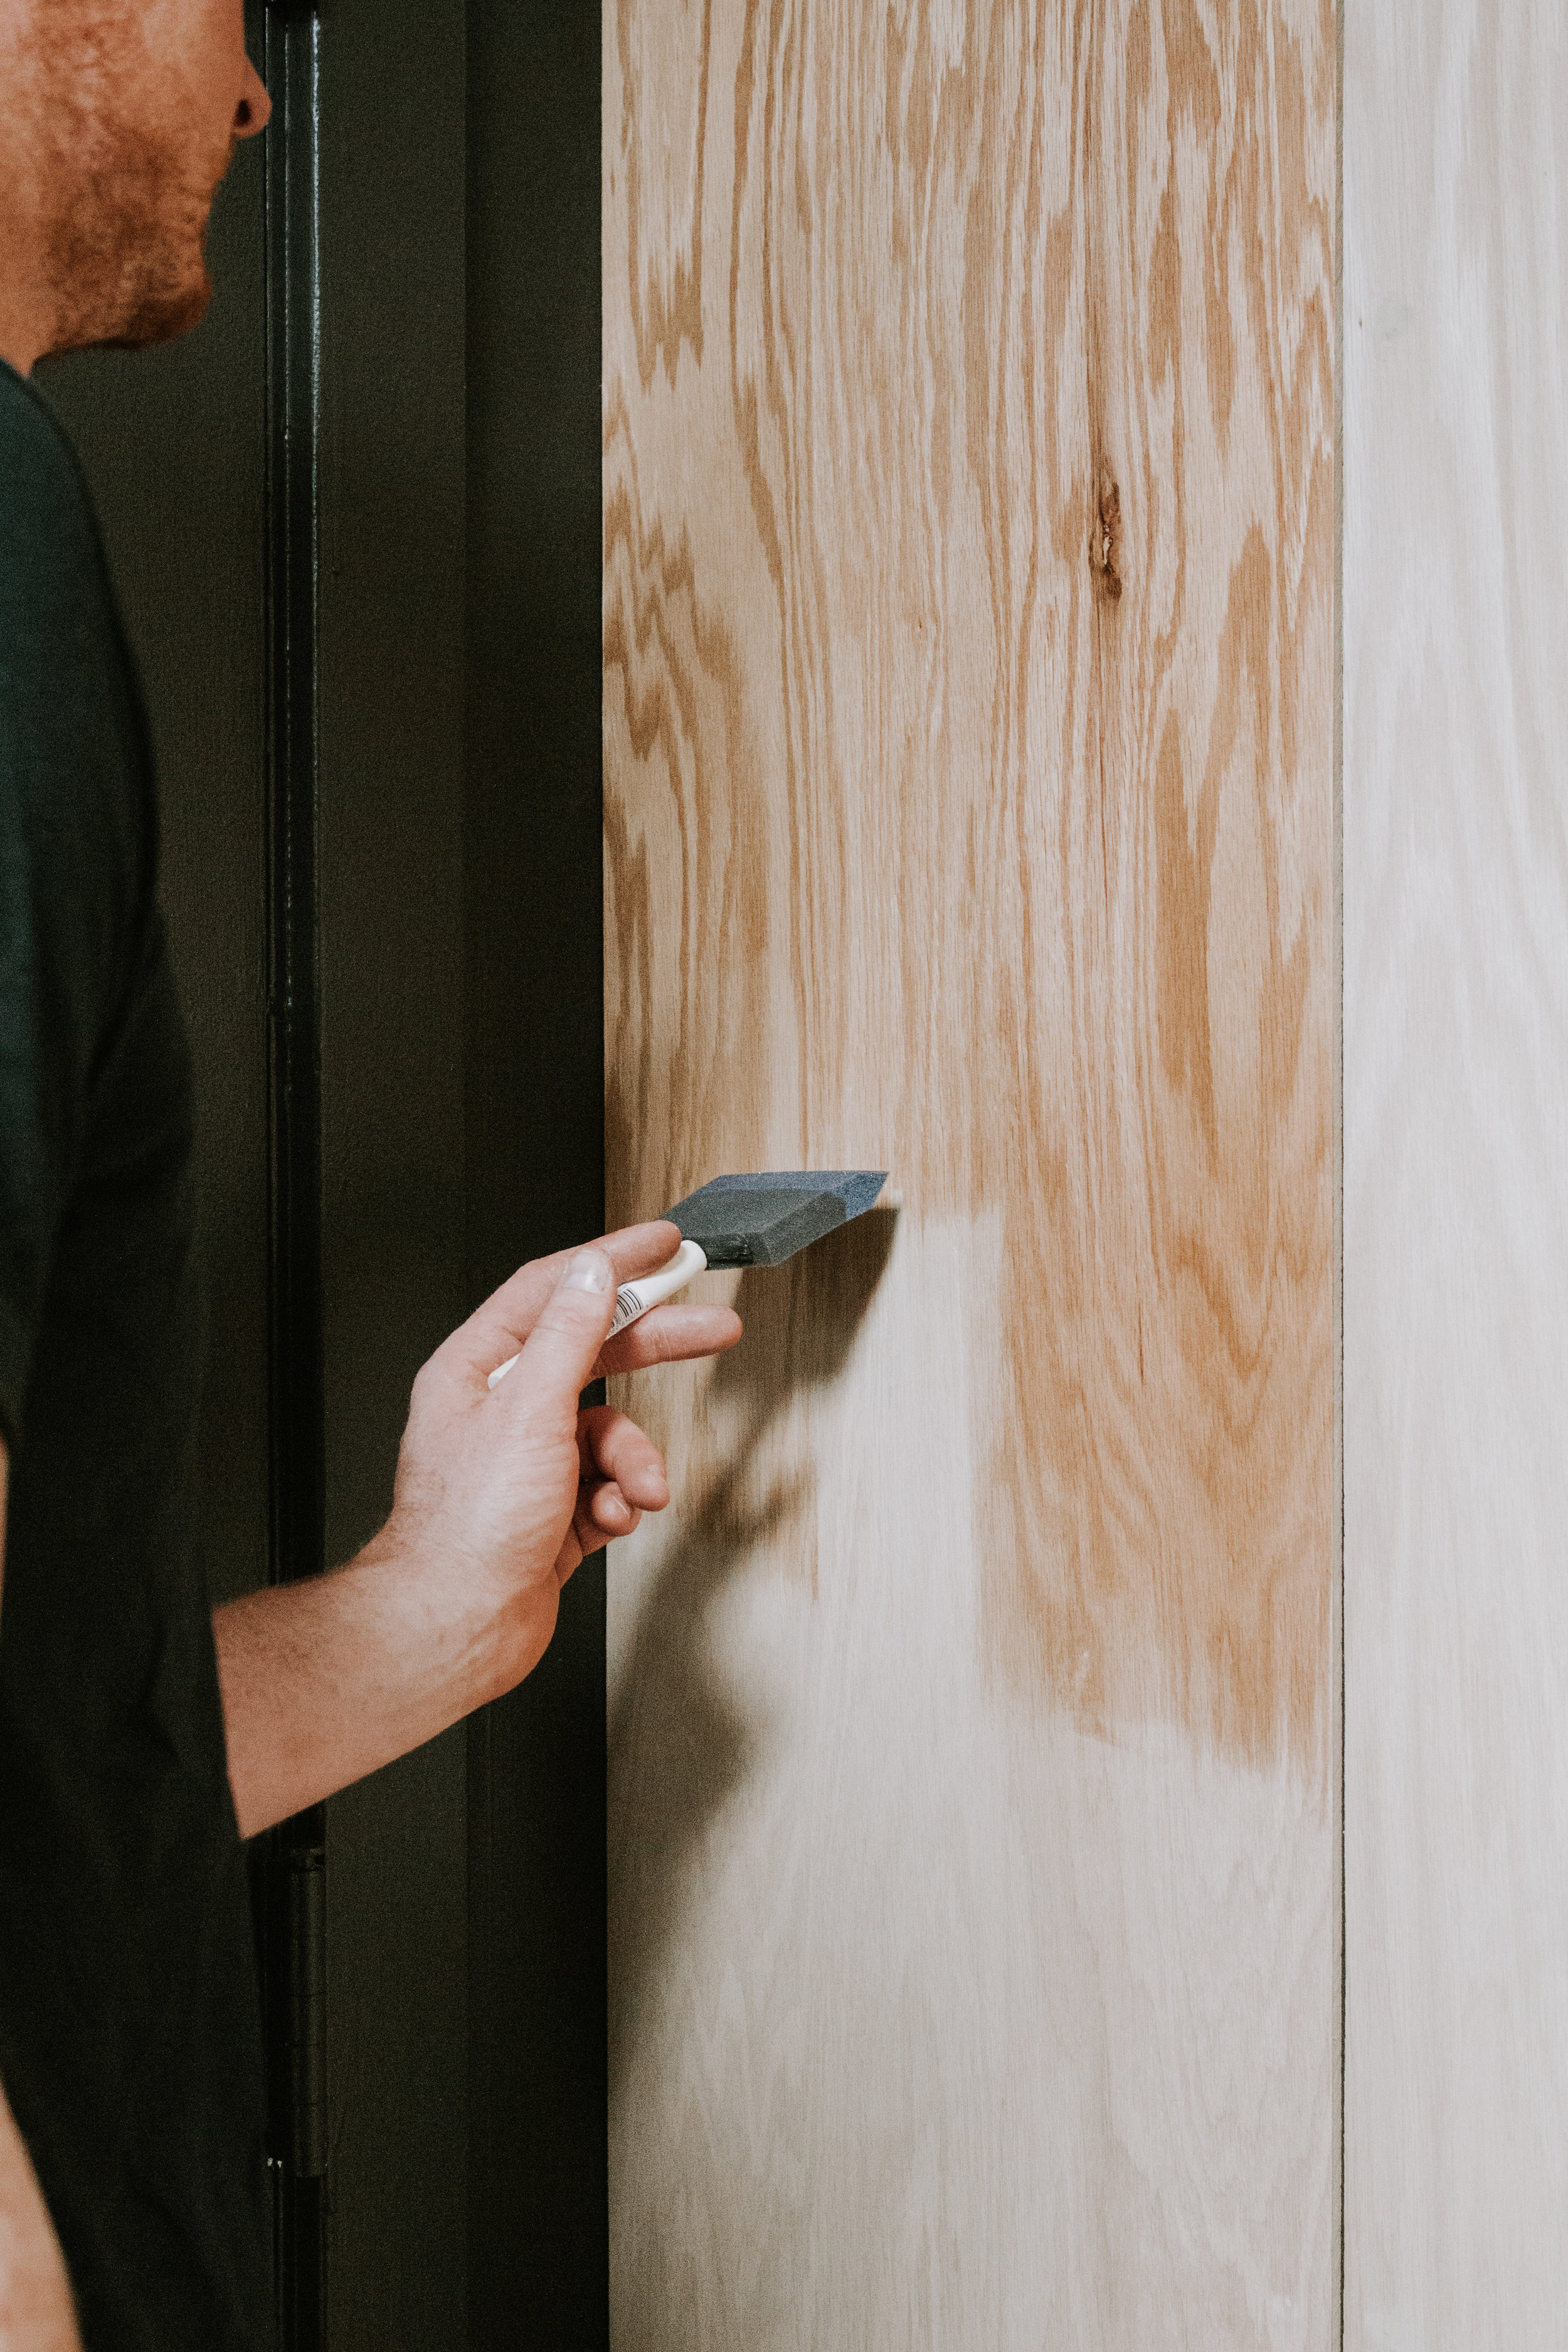 DIY Oak Plywood Accent Wall by Nadine Stay - turn a boring wall into a feature wall with vertical oak wood planking. Modern and retro style staggered accent wall with light oak wood.